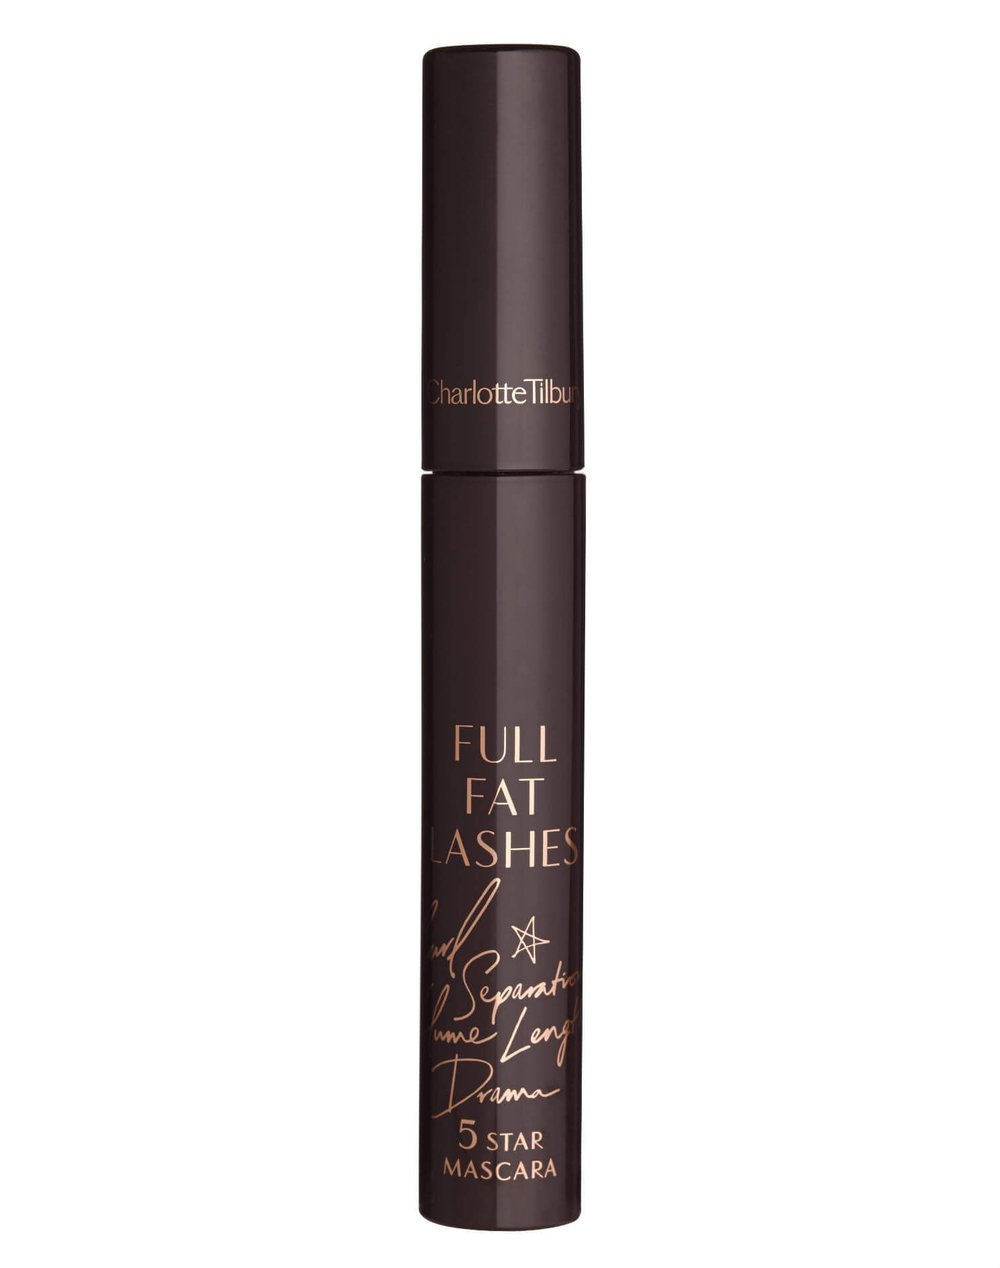 Charlotte Tilbury FULL FAT LASHES GLOSSY BLACK mascara